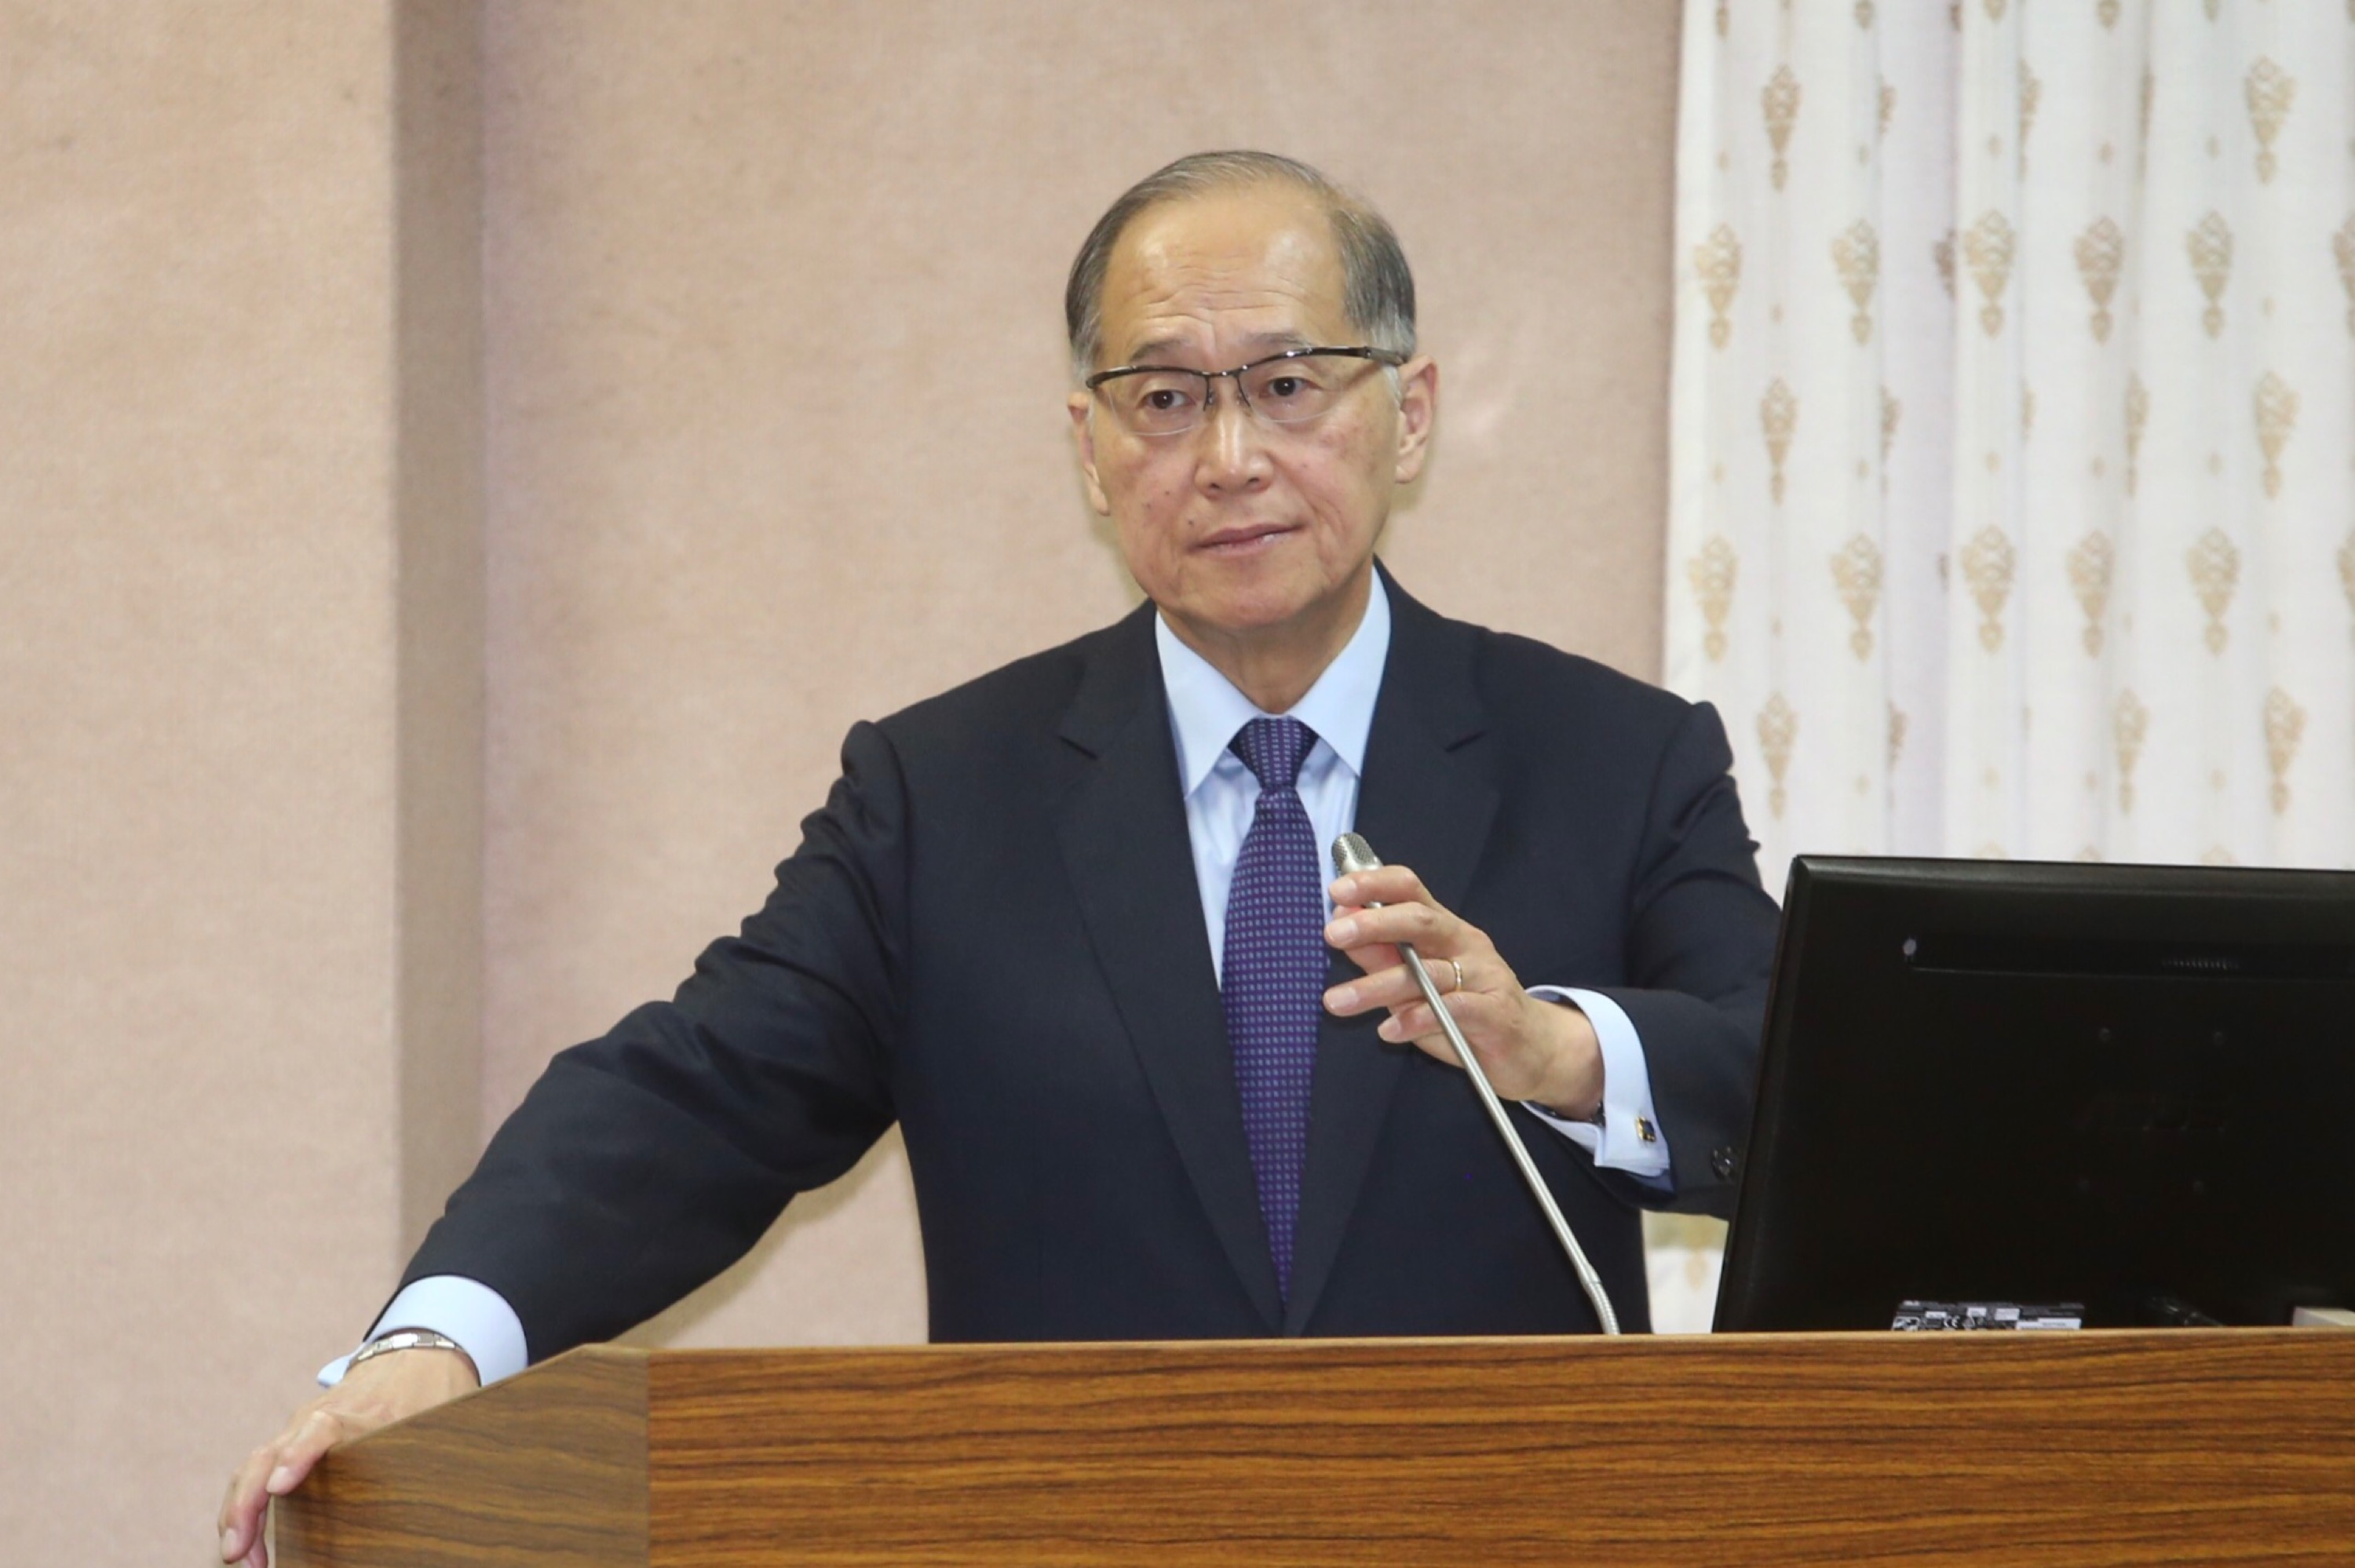 Taiwan's diplomatic ties with Caribbean region not stable: Foreign Minister